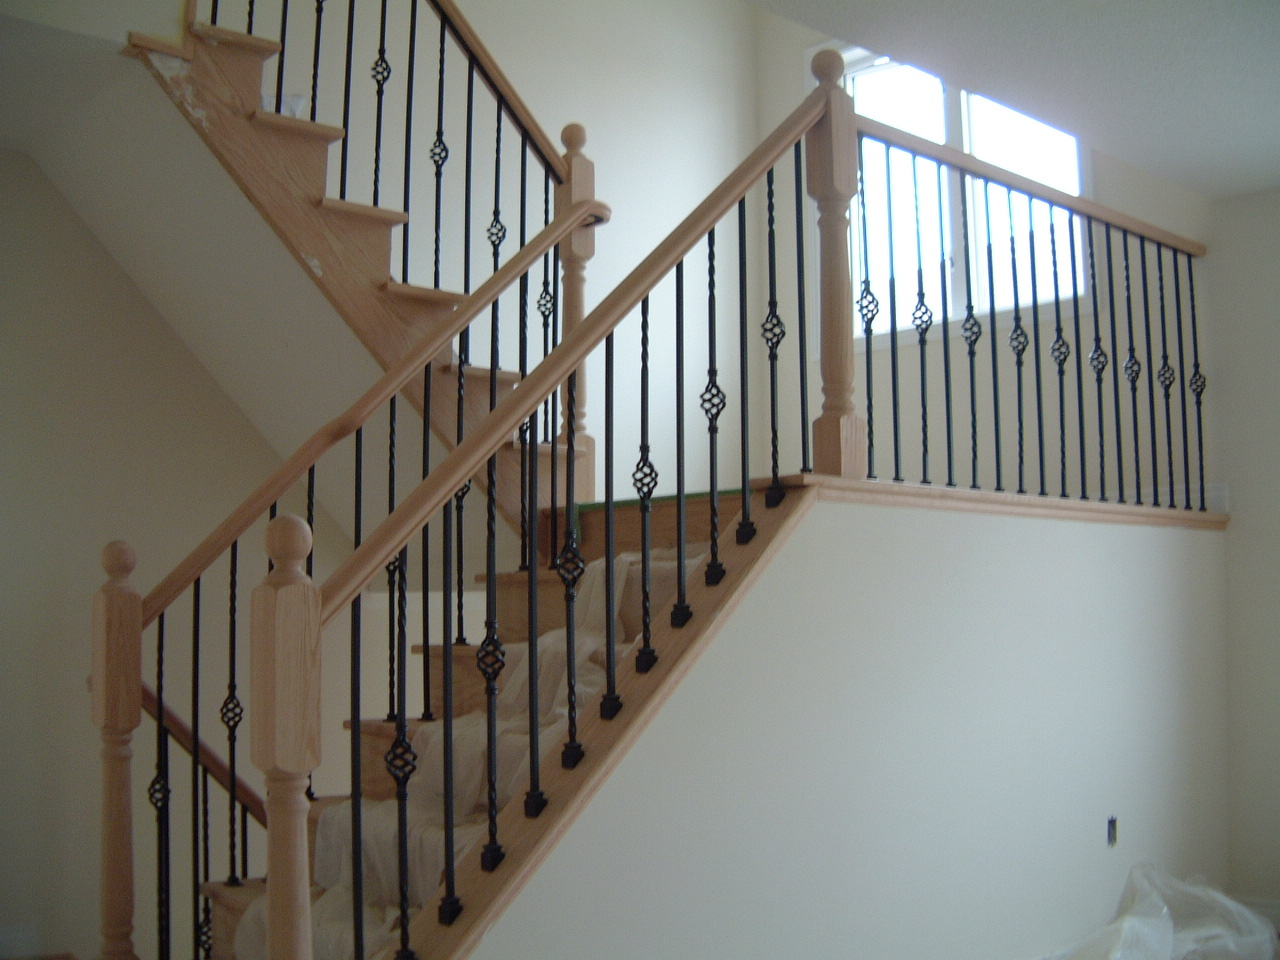 railing victoria specialists fabrication custom interior railings s metal